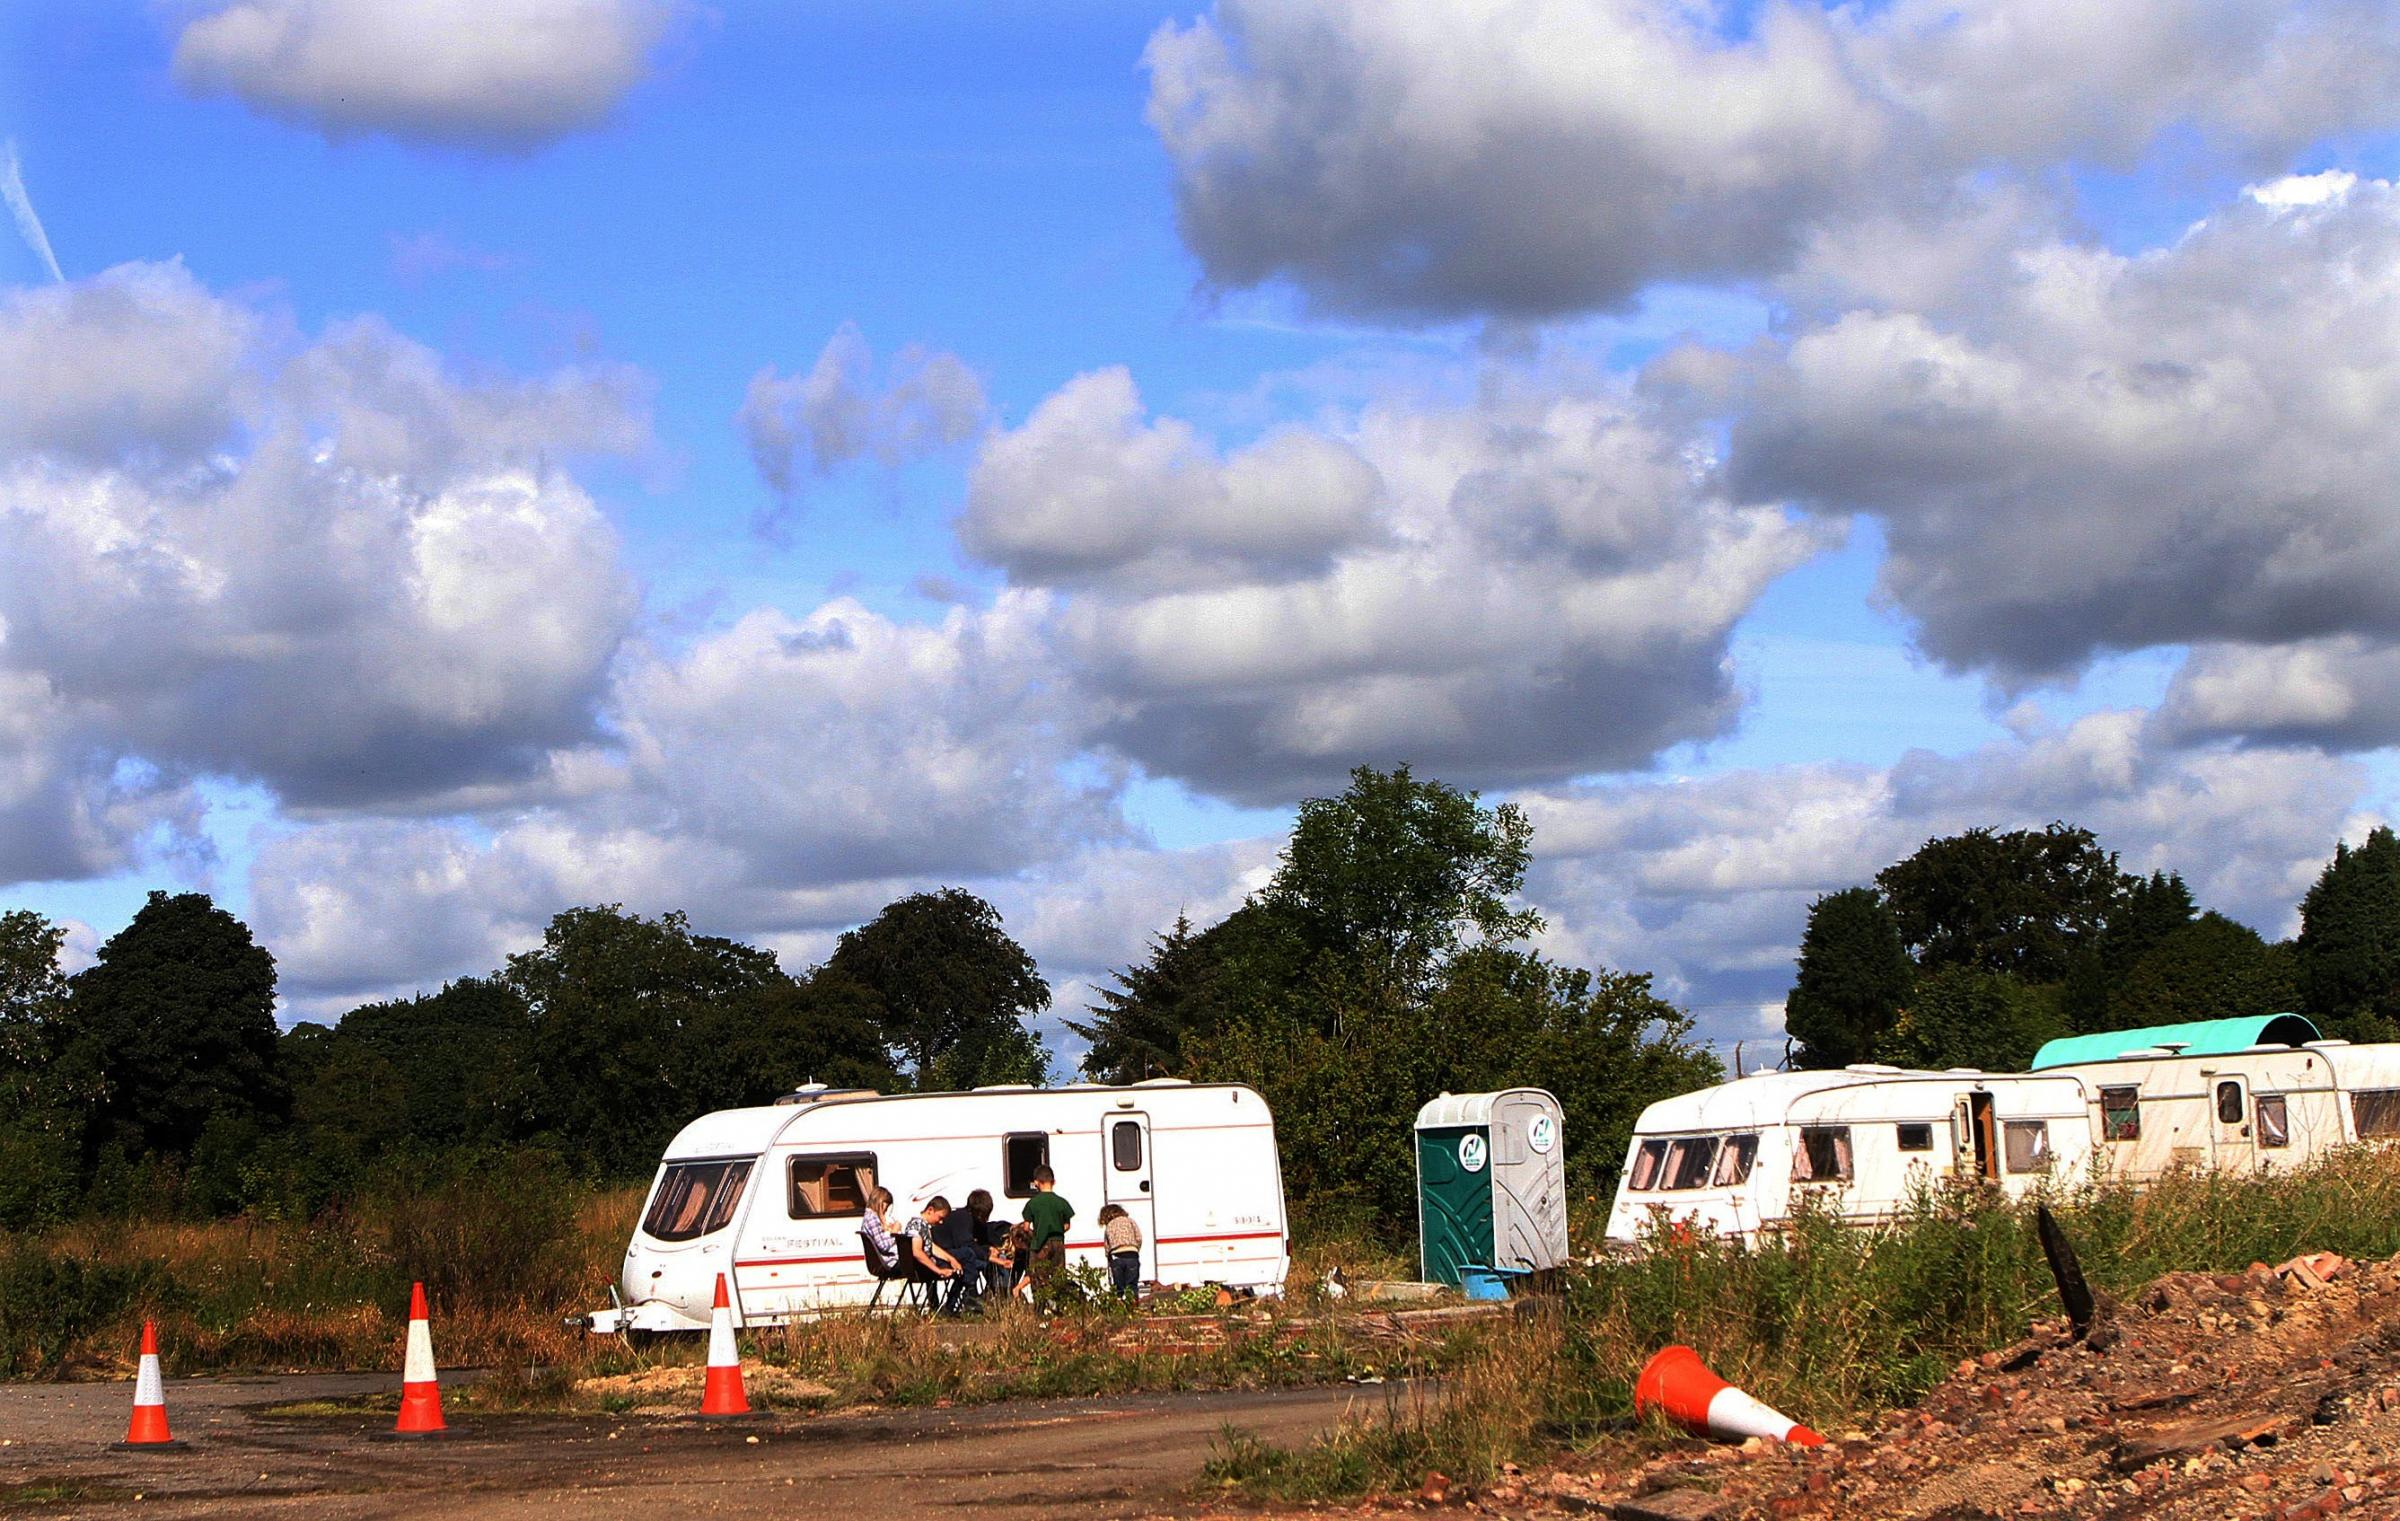 HORSE FAIR:Travellers on a site on the outskirts of Sedgefield, as